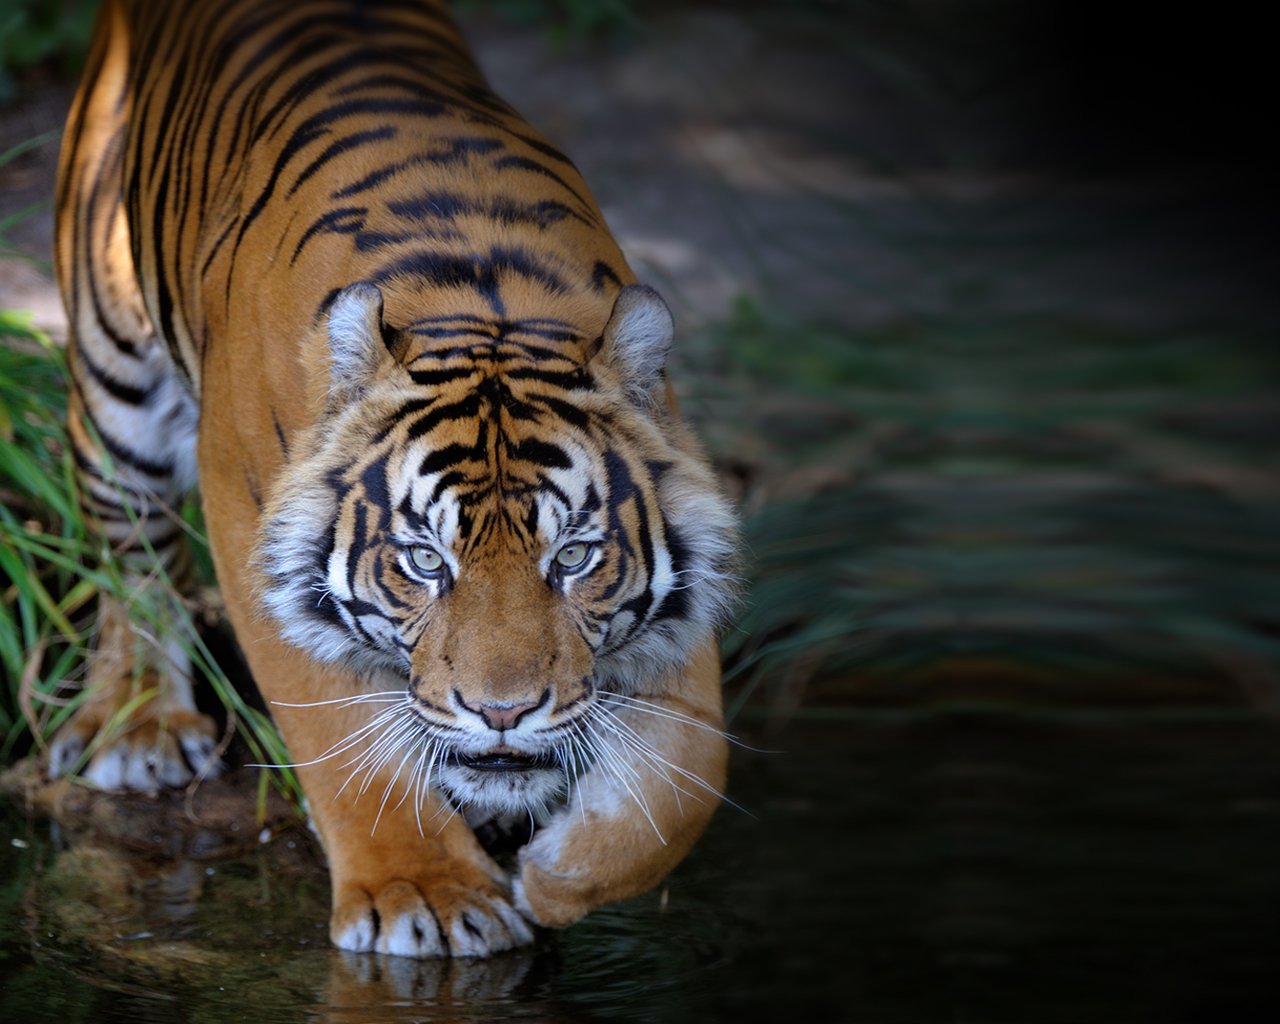 Y Tiger Is Our National Animal New Delhi Animal Planet is